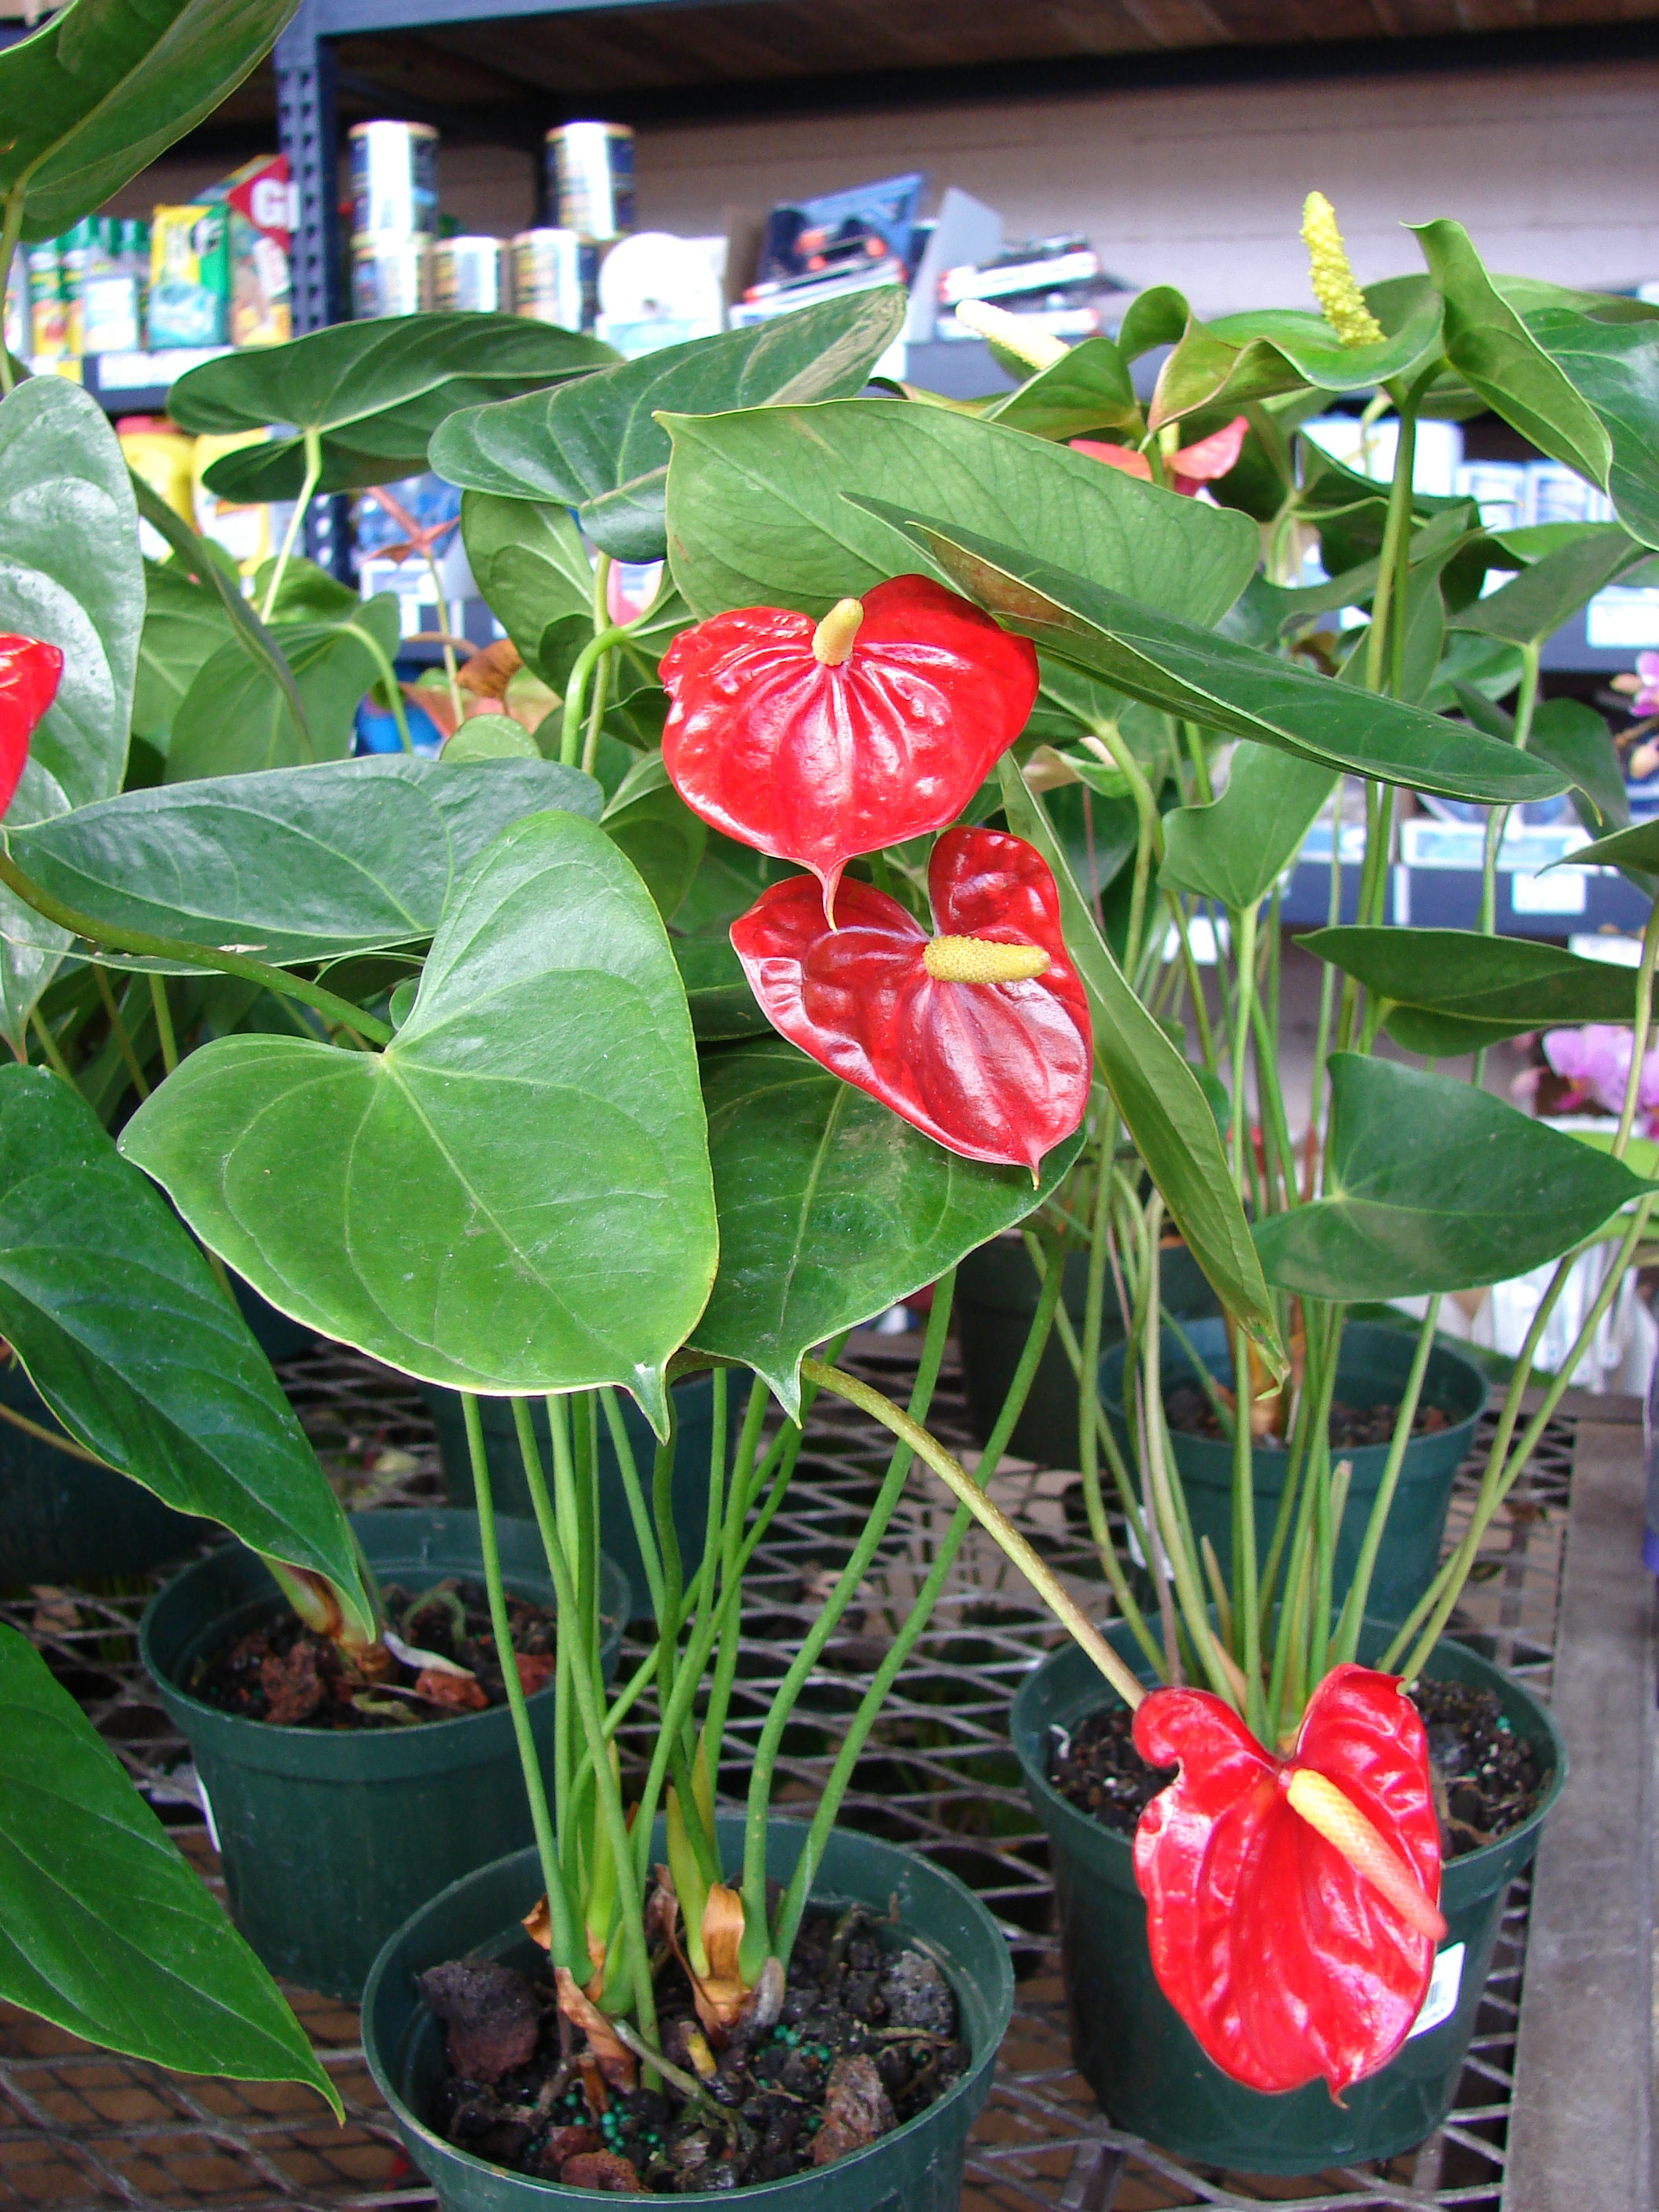 File Starr 080103 1397 Anthurium Andraeanum Flowering Habit Lowes Garden Center Kahului Maui 24899714095 Jpg Wikimedia Commons See reviews and photos of luaus in maui, hawaii on tripadvisor. https commons wikimedia org wiki file starr 080103 1397 anthurium andraeanum flowering habit lowes garden center kahului maui 24899714095 jpg